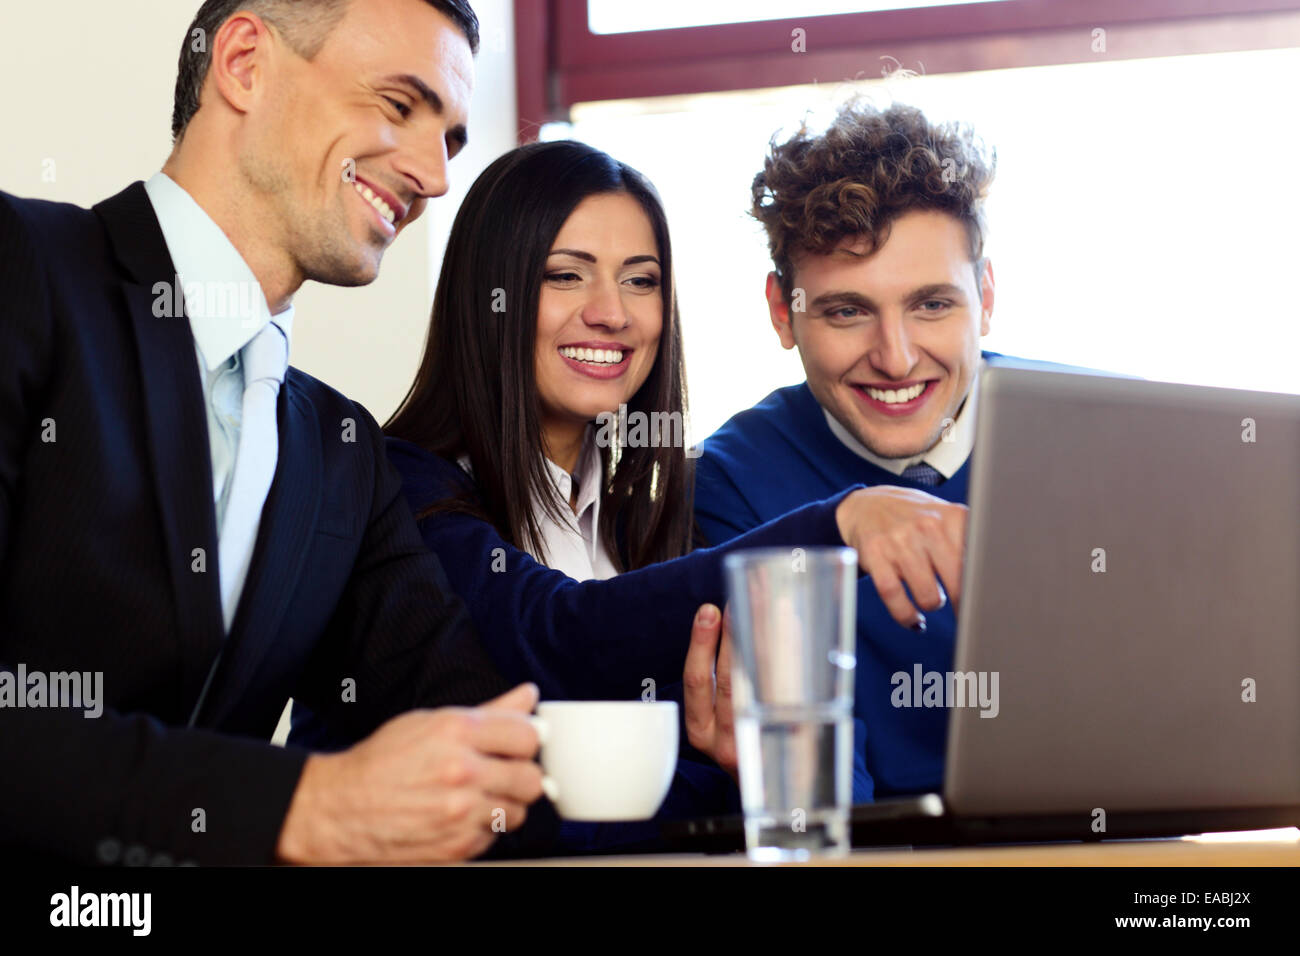 Smiling business people working on the laptop - Stock Image